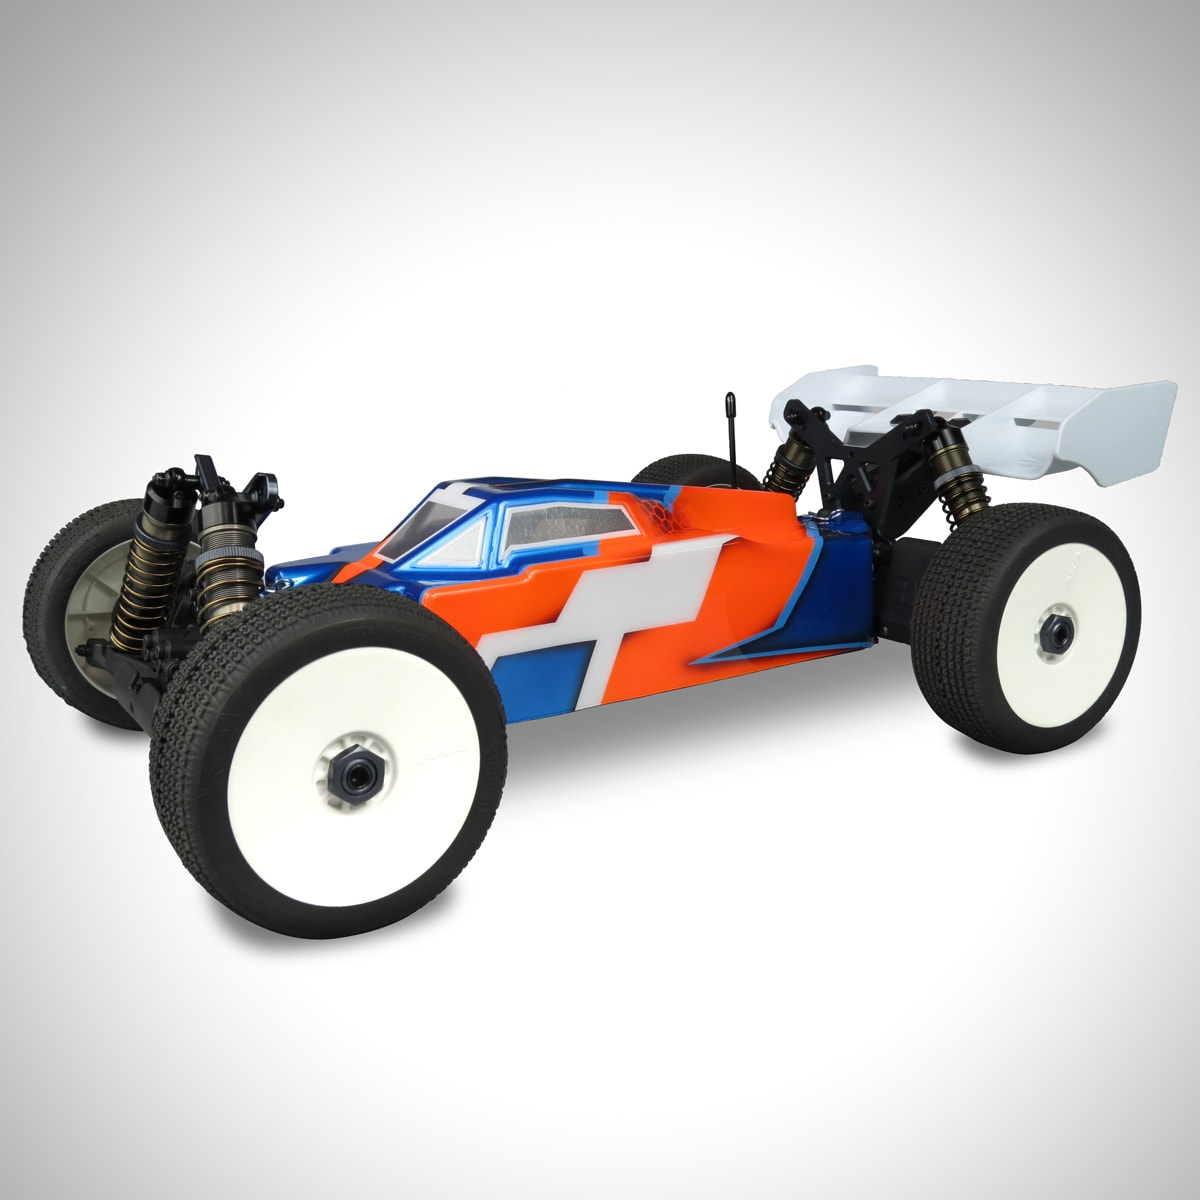 Tekno RC Unveils the EB48.4 1/8-scale Competition Buggy